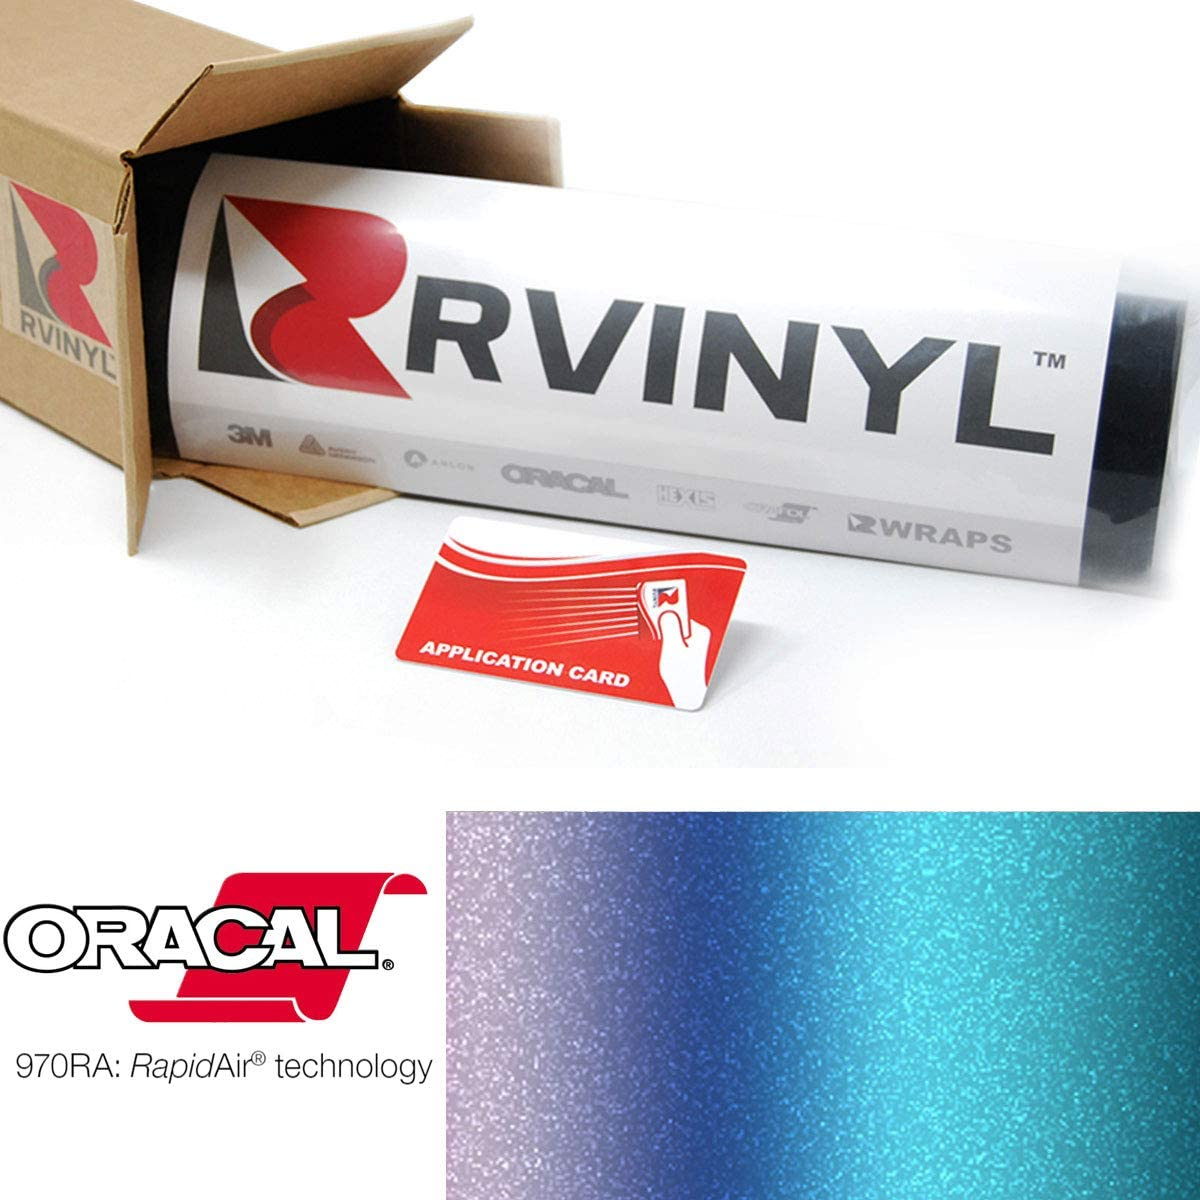 ORACAL 970RA Shift Effect It is very popular Matte Turquoise Lavender 989M NEW before selling Wrapping